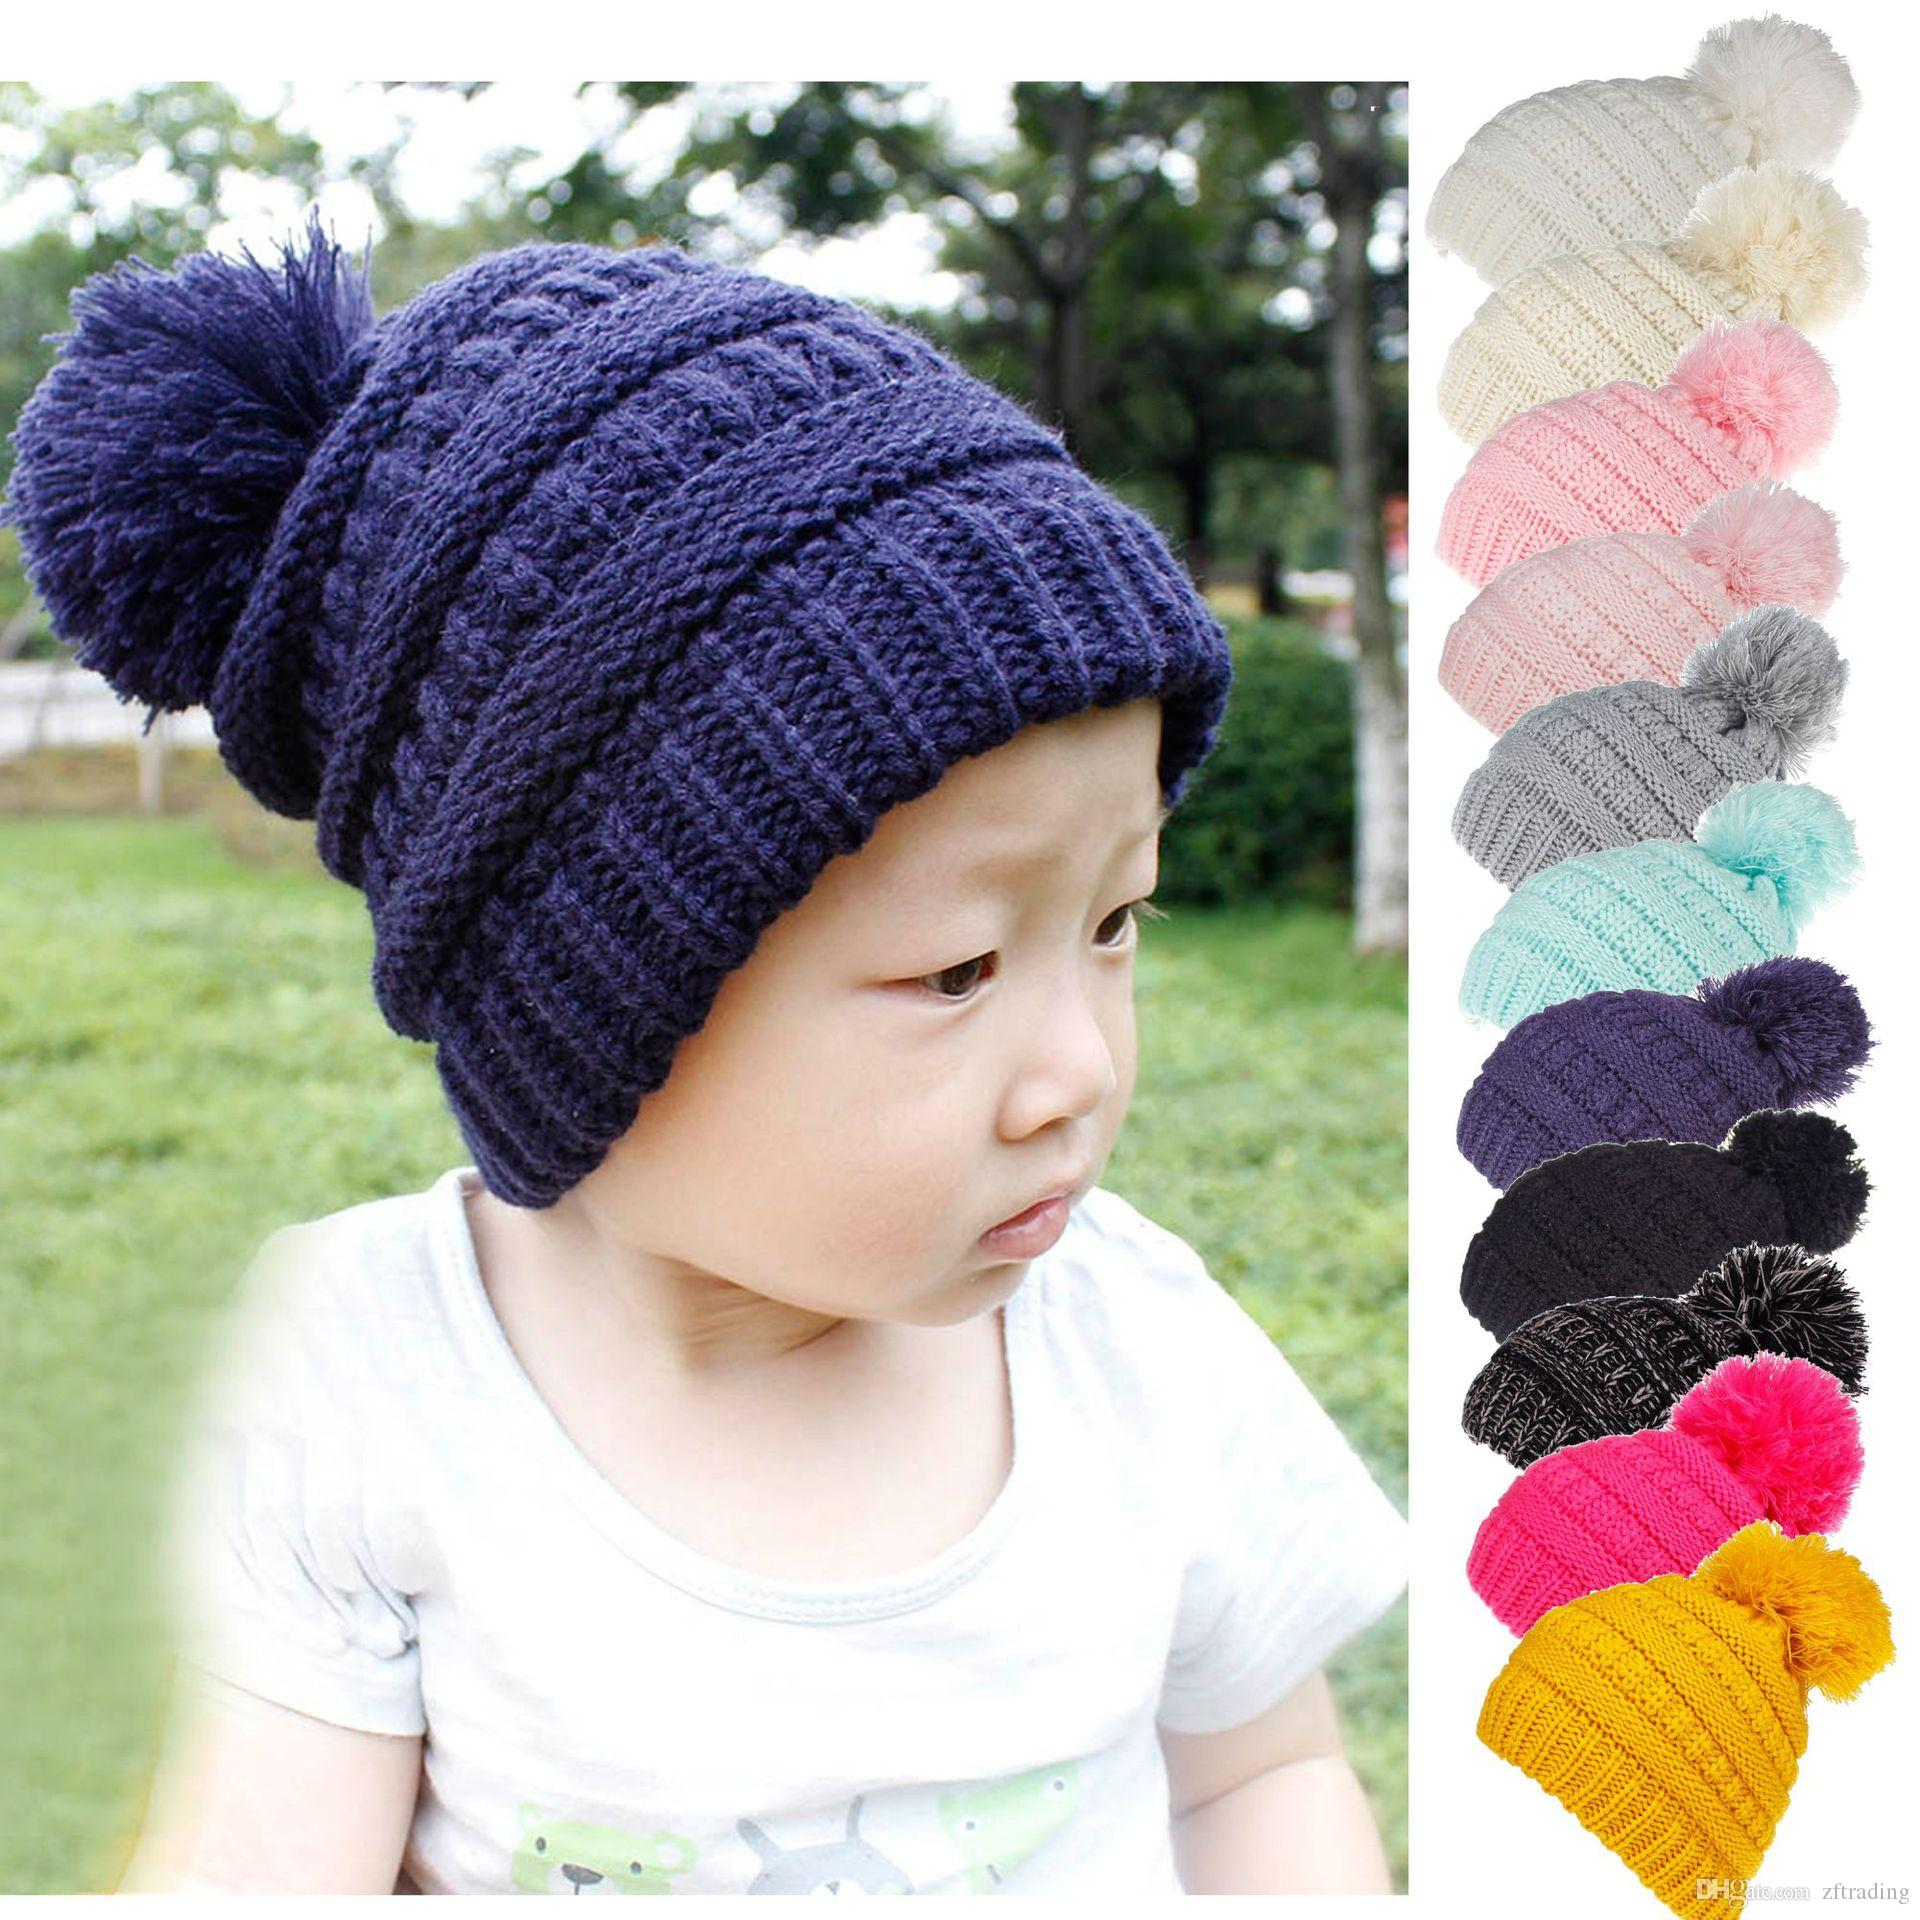 180294d588d 2019 Kids Girls Wool Knitting Caps Label Baby Knitted Cap Wool Ball  Children S Fur Hat Winter Warm Accessories From Zftrading